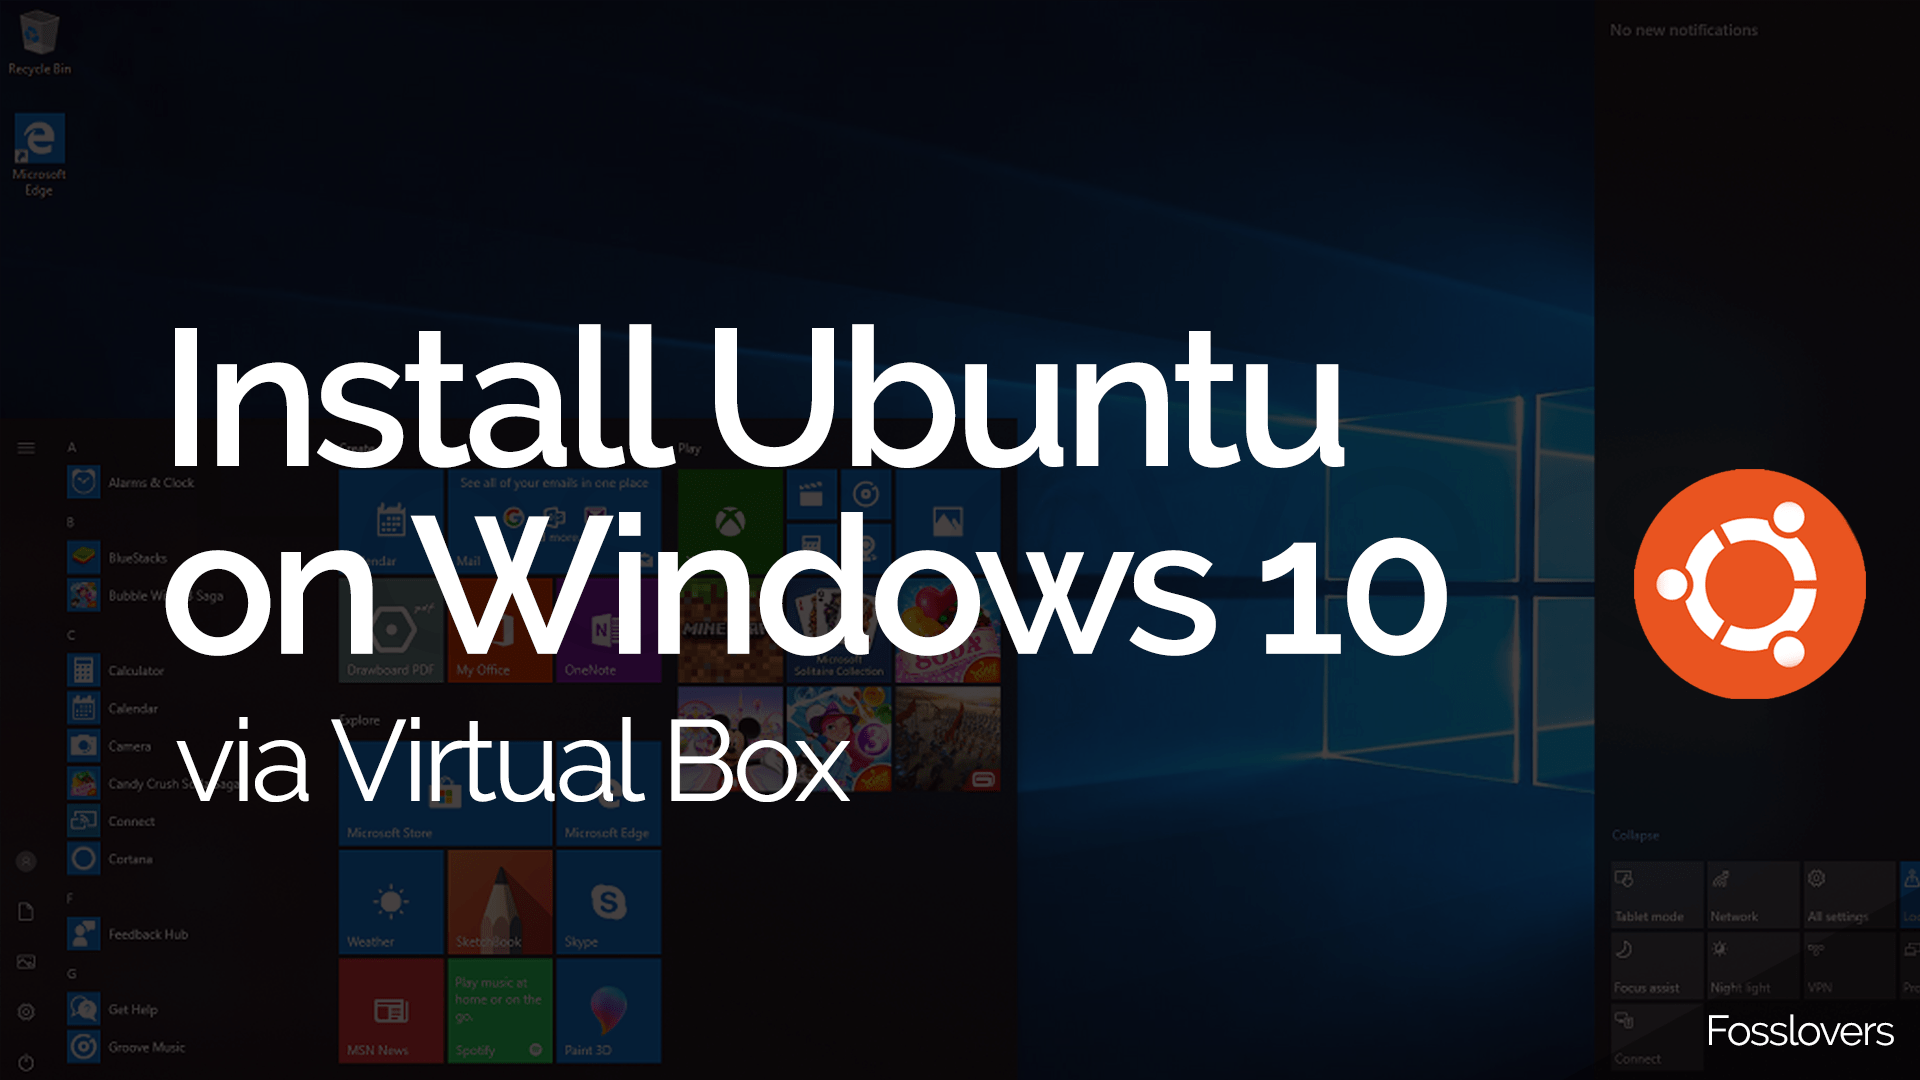 Install Ubuntu 18.04 LTS Bionic on Windows 10 via Virtual Box